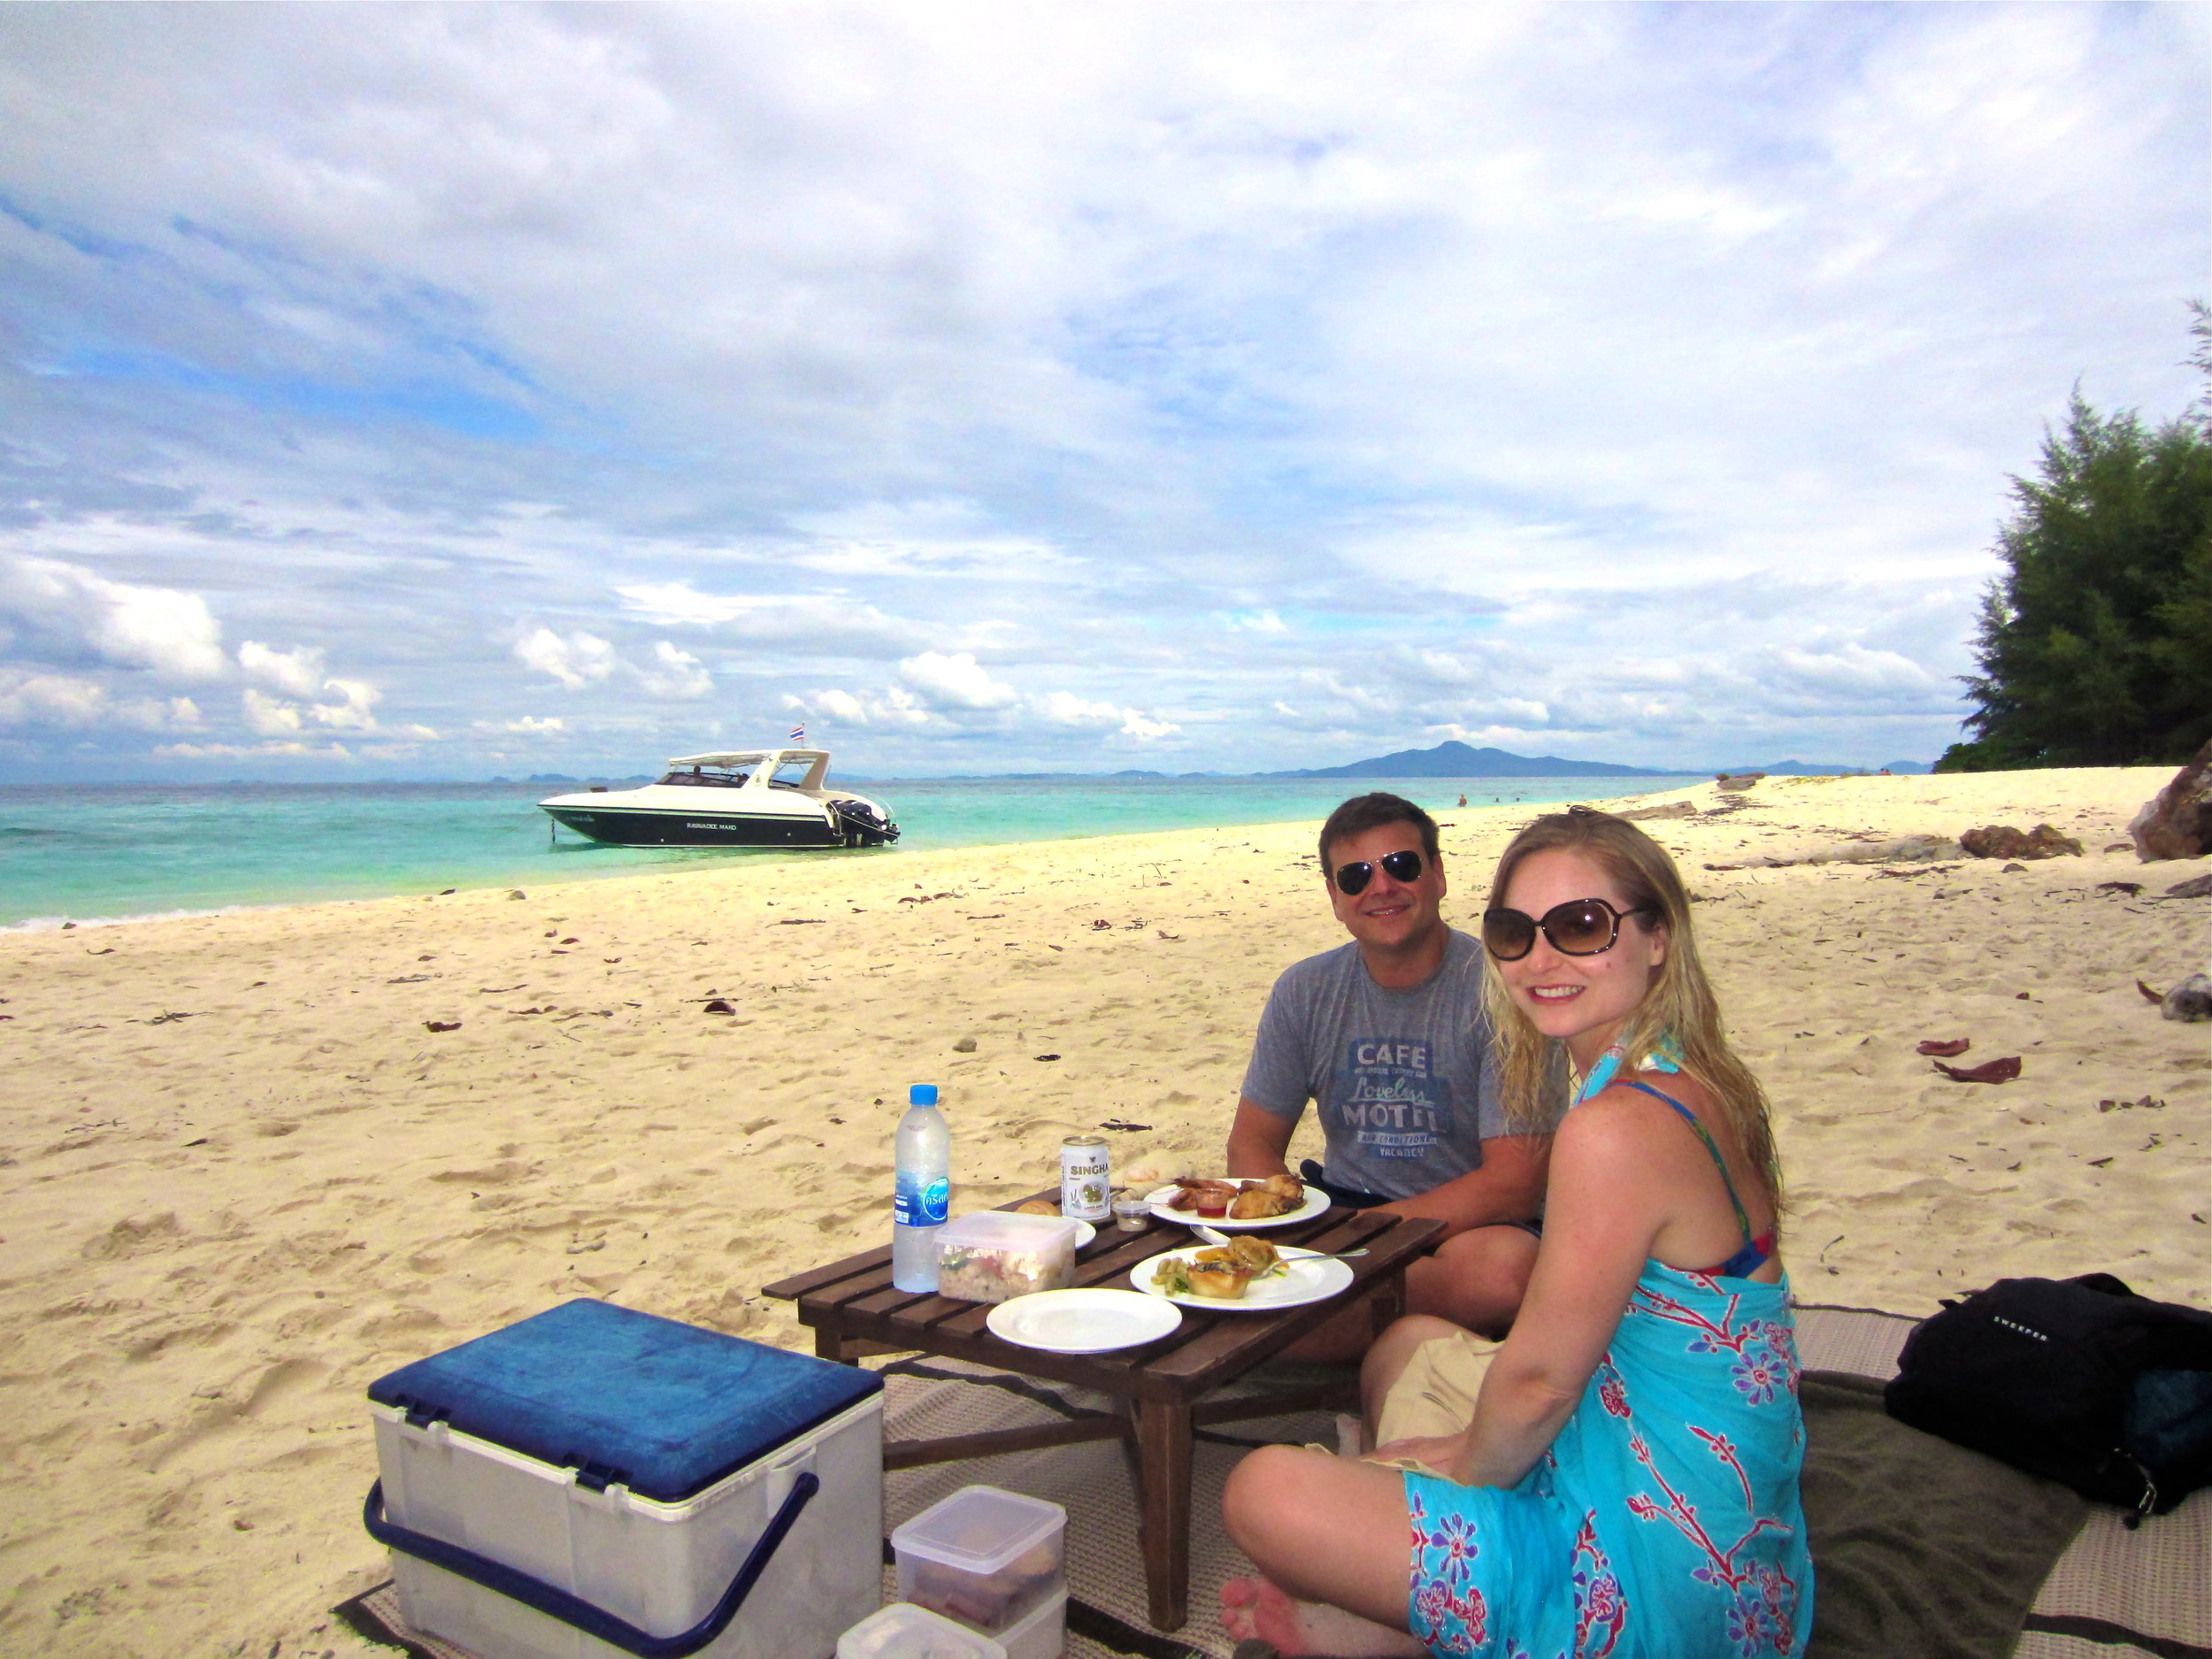 Not a tourist in sight during our private picnic somewhere off of Krabi, Thailand. #Spoiled